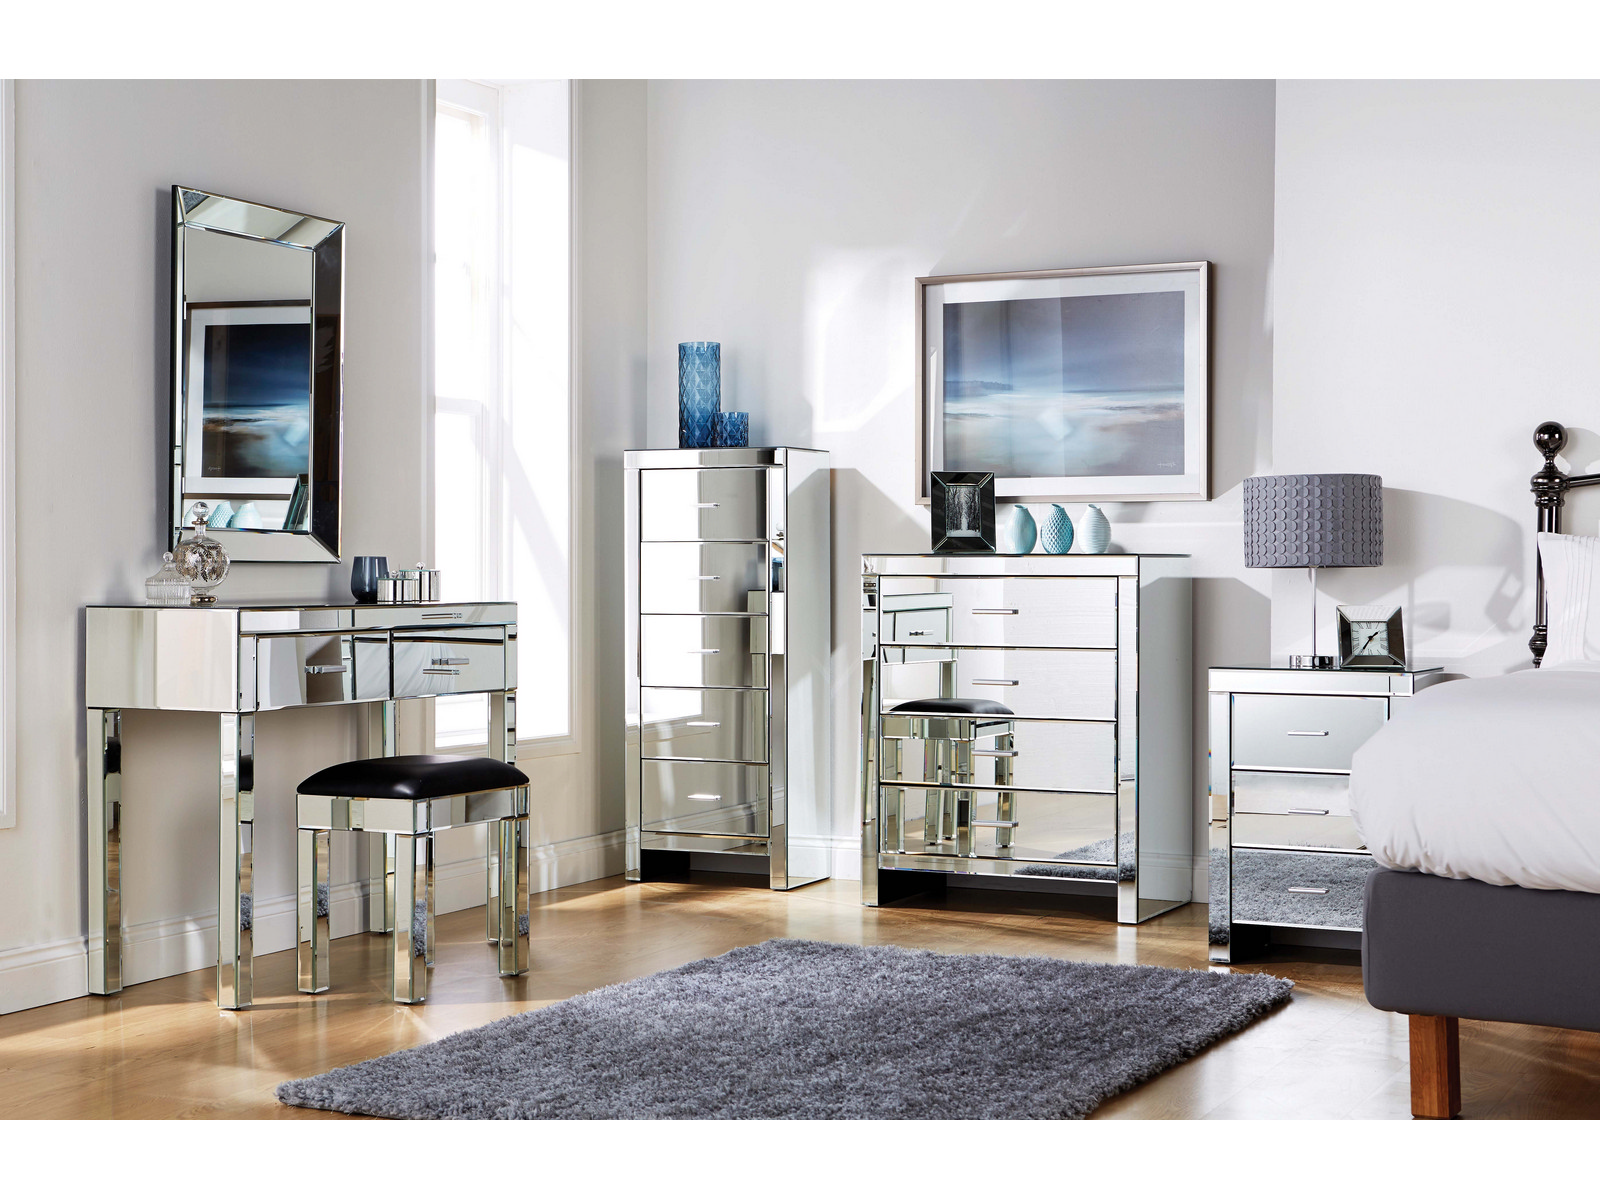 Mirrored Furniture Bedroom Collection Gl Chest Drawers Dressing Table Range